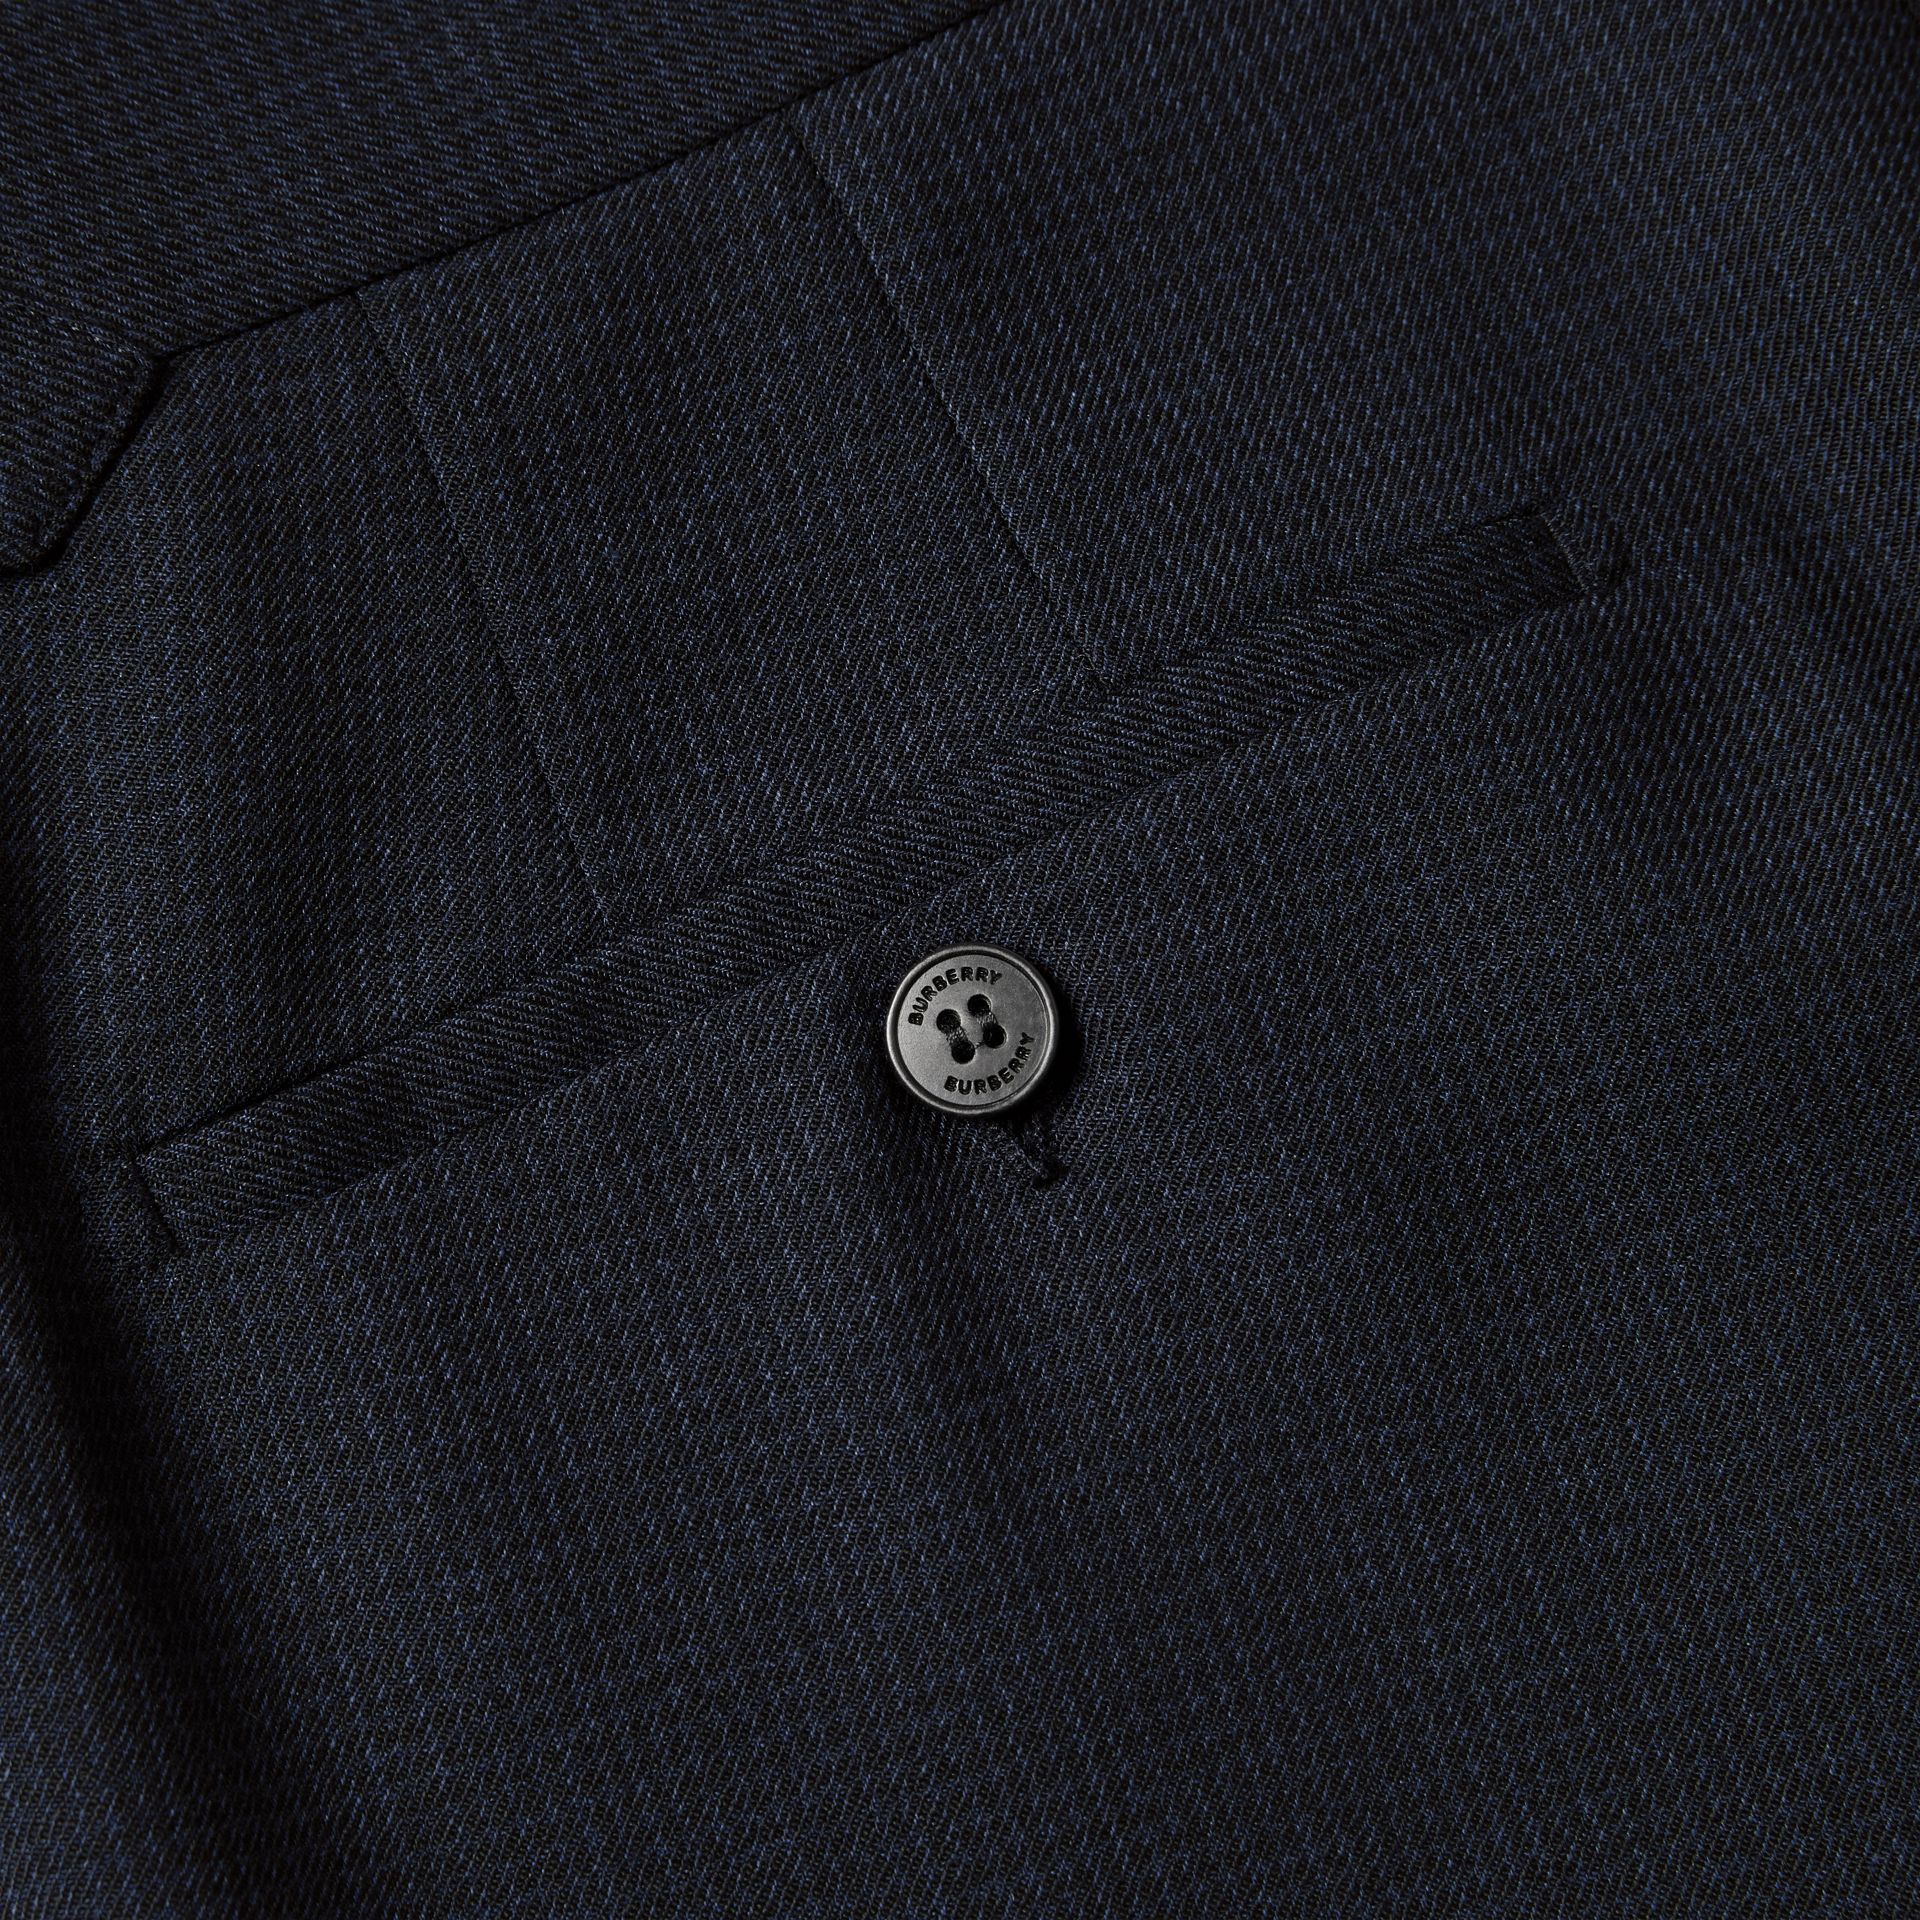 English Fit Puppytooth Check Wool Suit in Dark Navy - Men | Burberry - gallery image 9